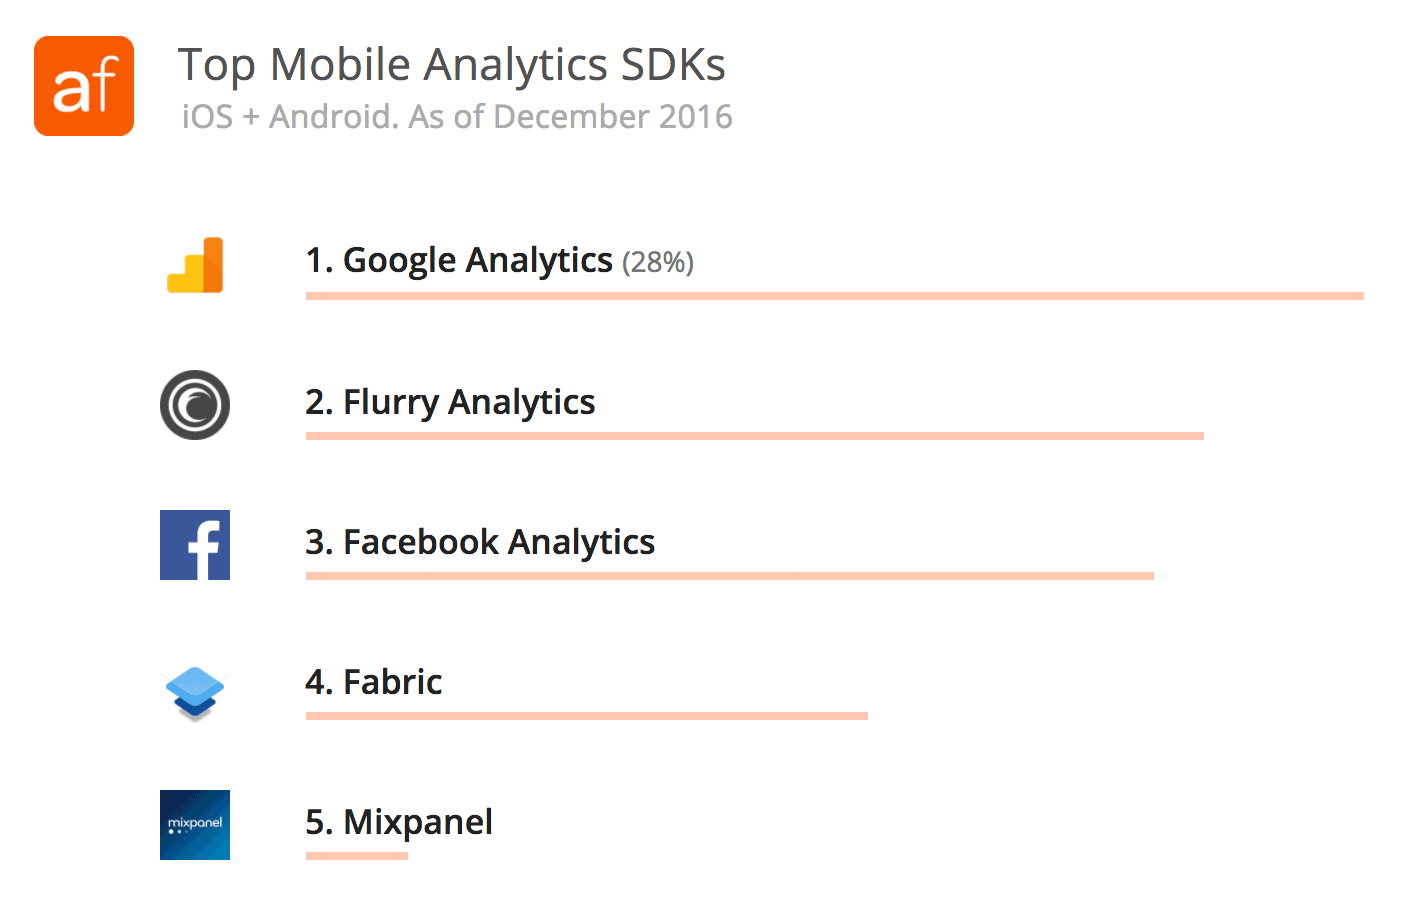 Top Mobile Analytics SDKs - iOS and Android